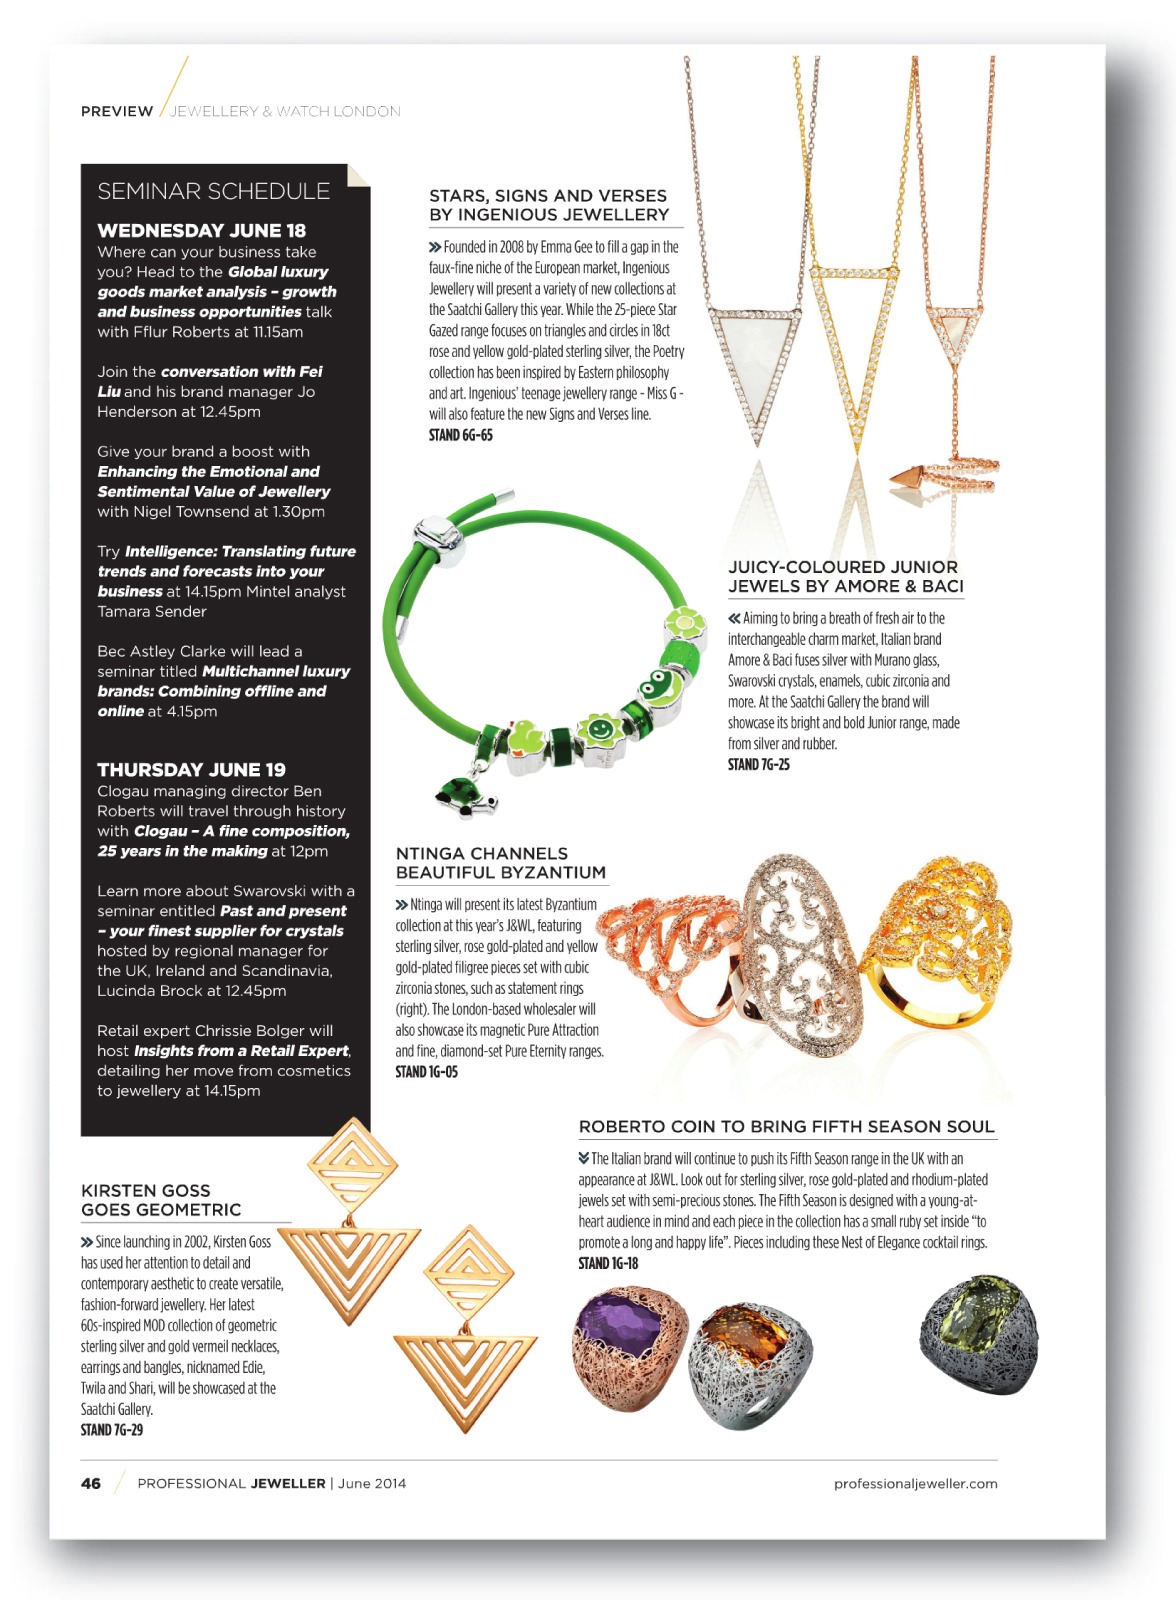 Professional Jeweller June 2014